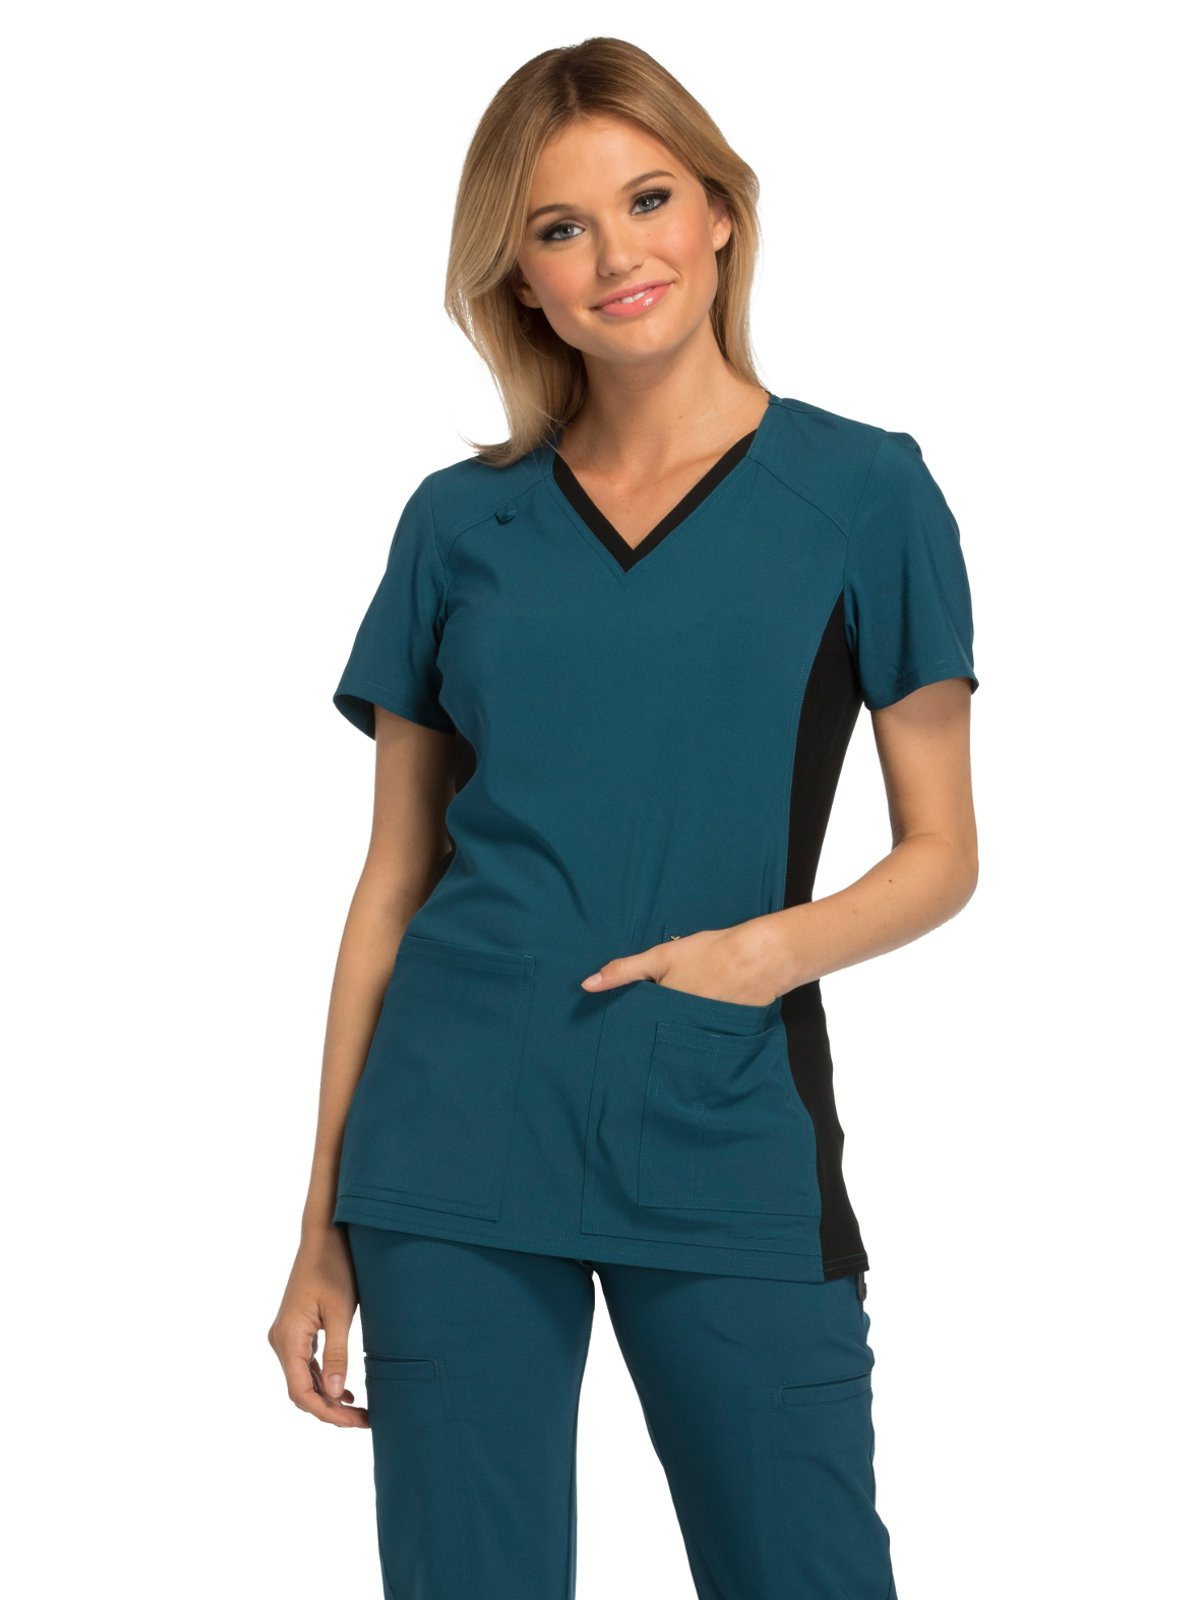 f3a983ca4e6b2 Best Rated in Medical Uniforms & Scrubs & Helpful Customer Reviews ...